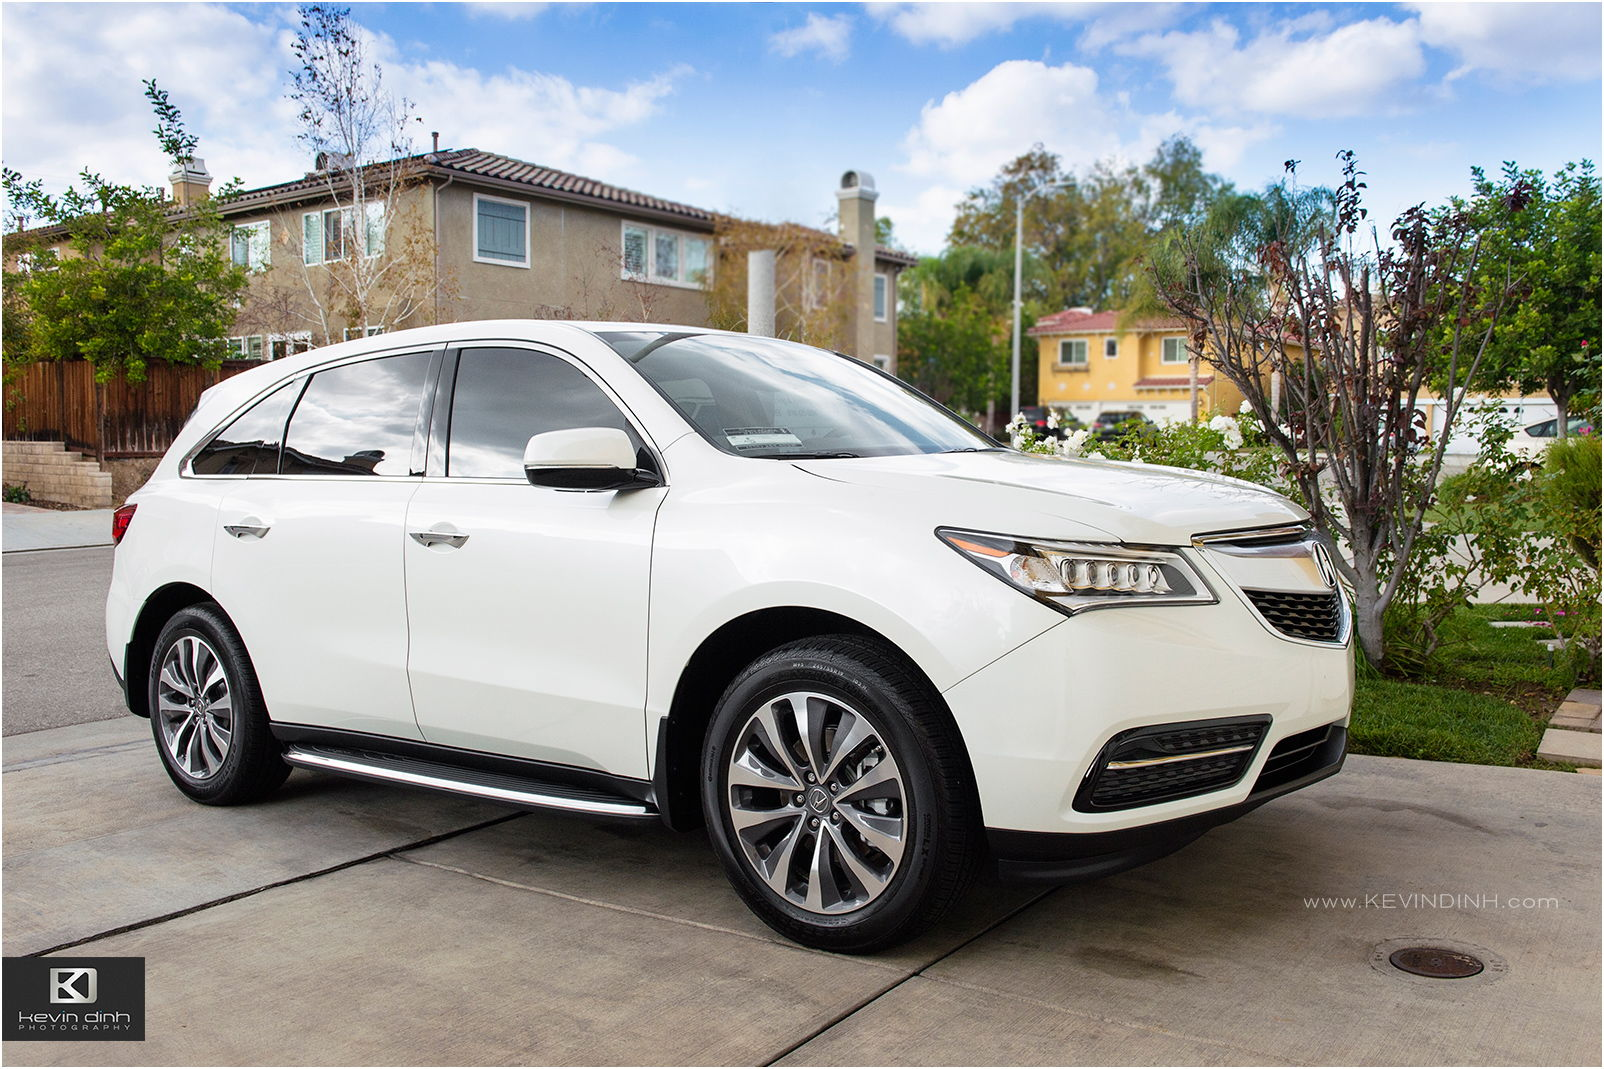 2015 Acura Mdx White | 200+ Interior and Exterior Images